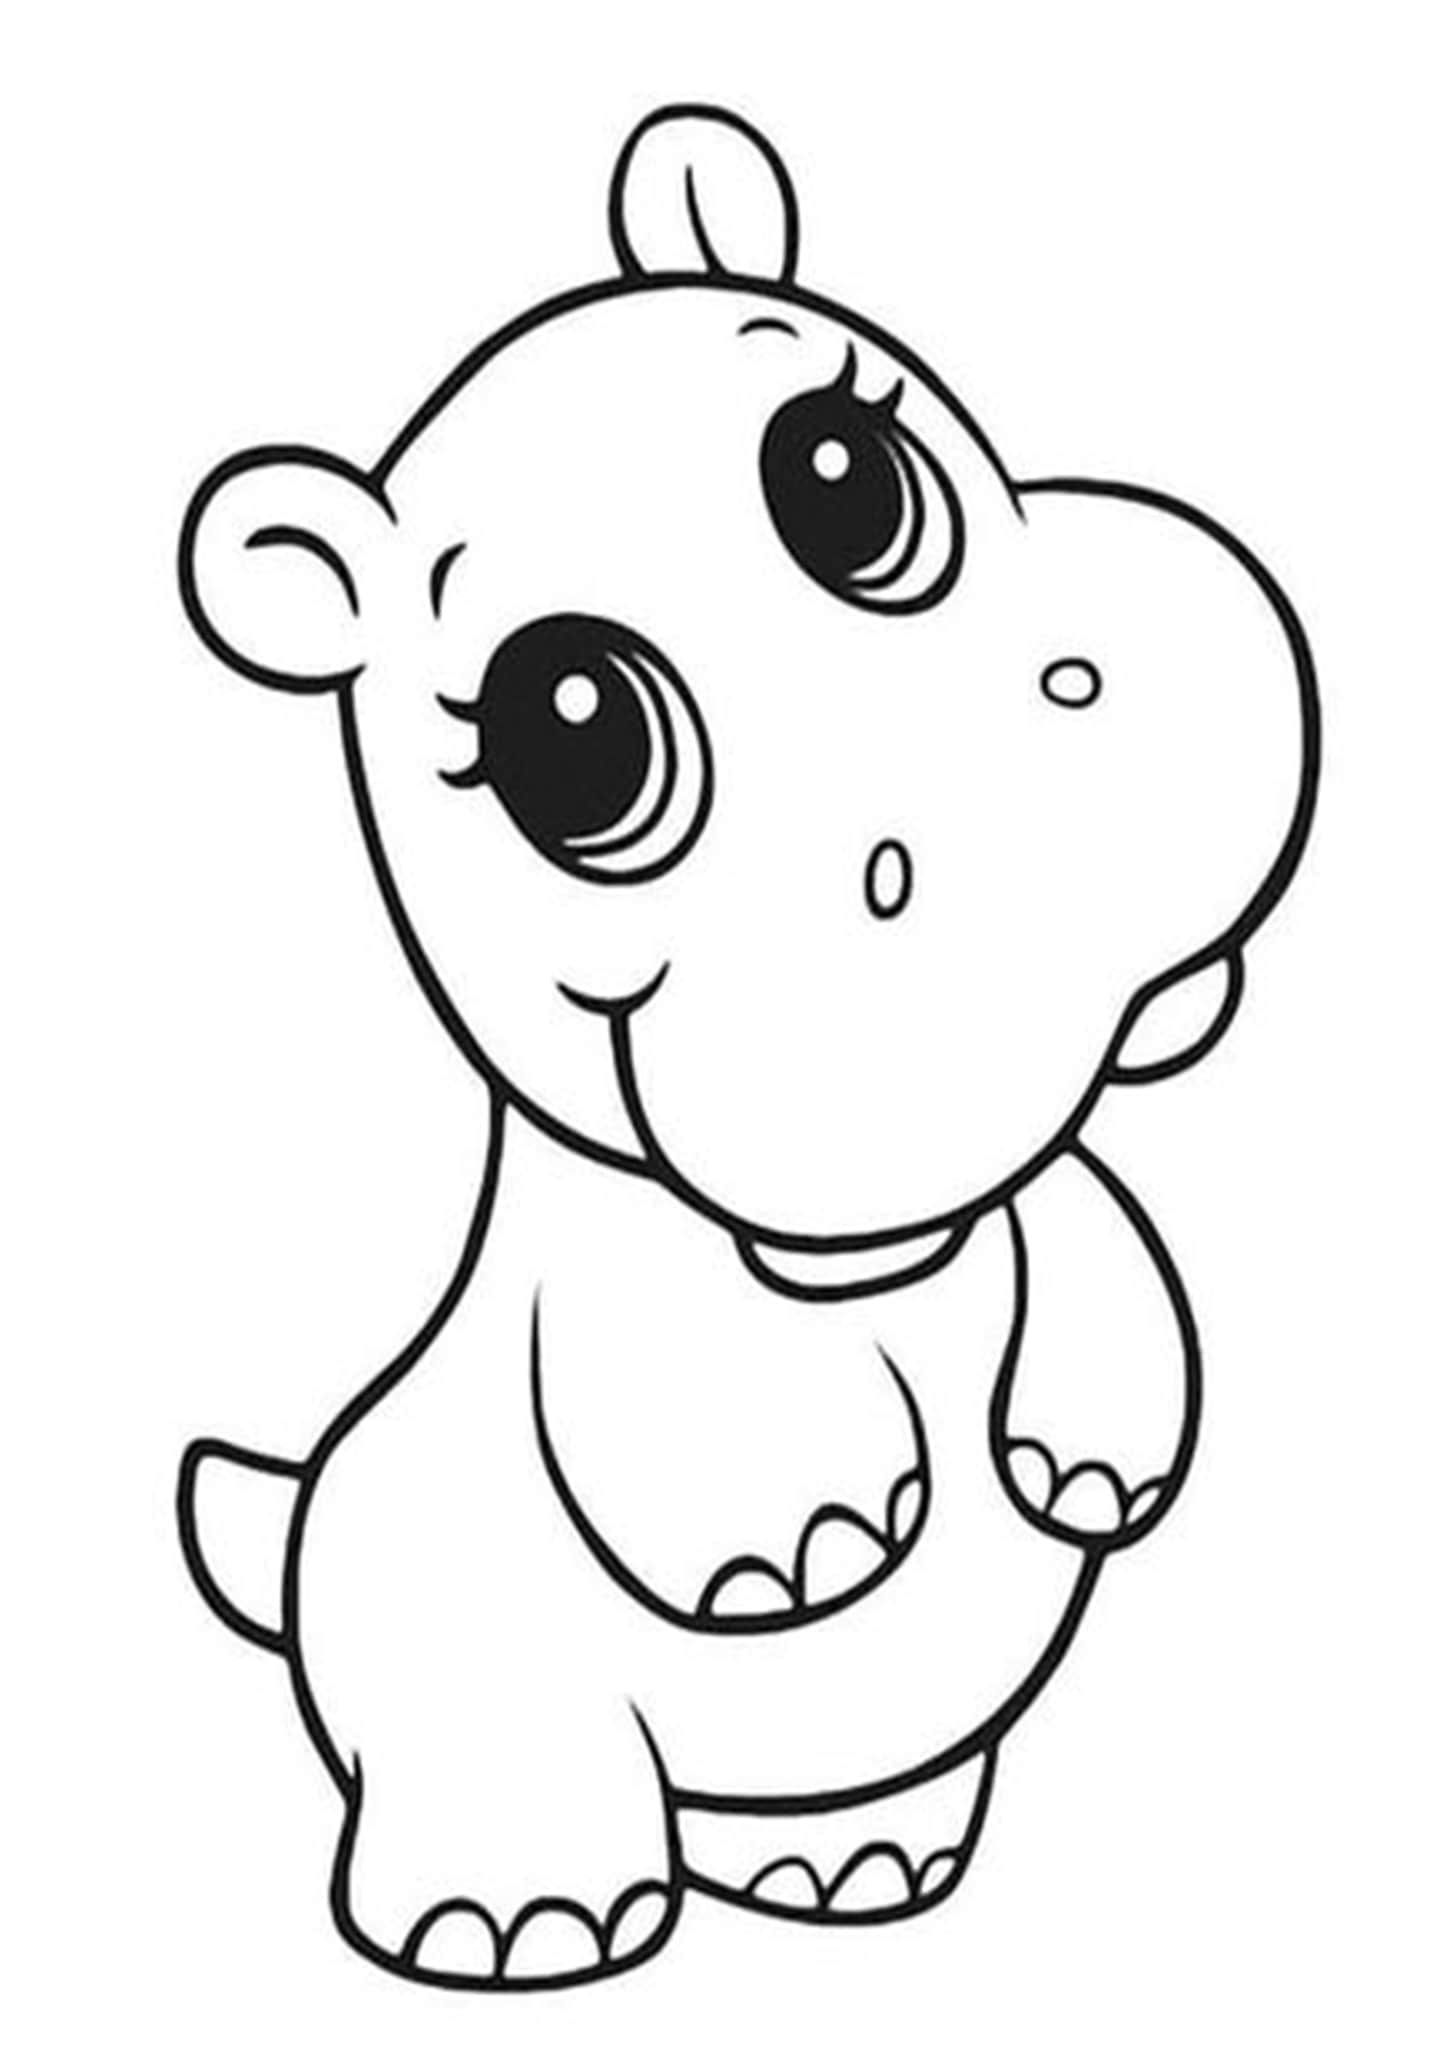 Free Easy To Print Baby Animal Coloring Pages In 2020 Baby Animal Drawings Animal Coloring Pages Hippo Drawing